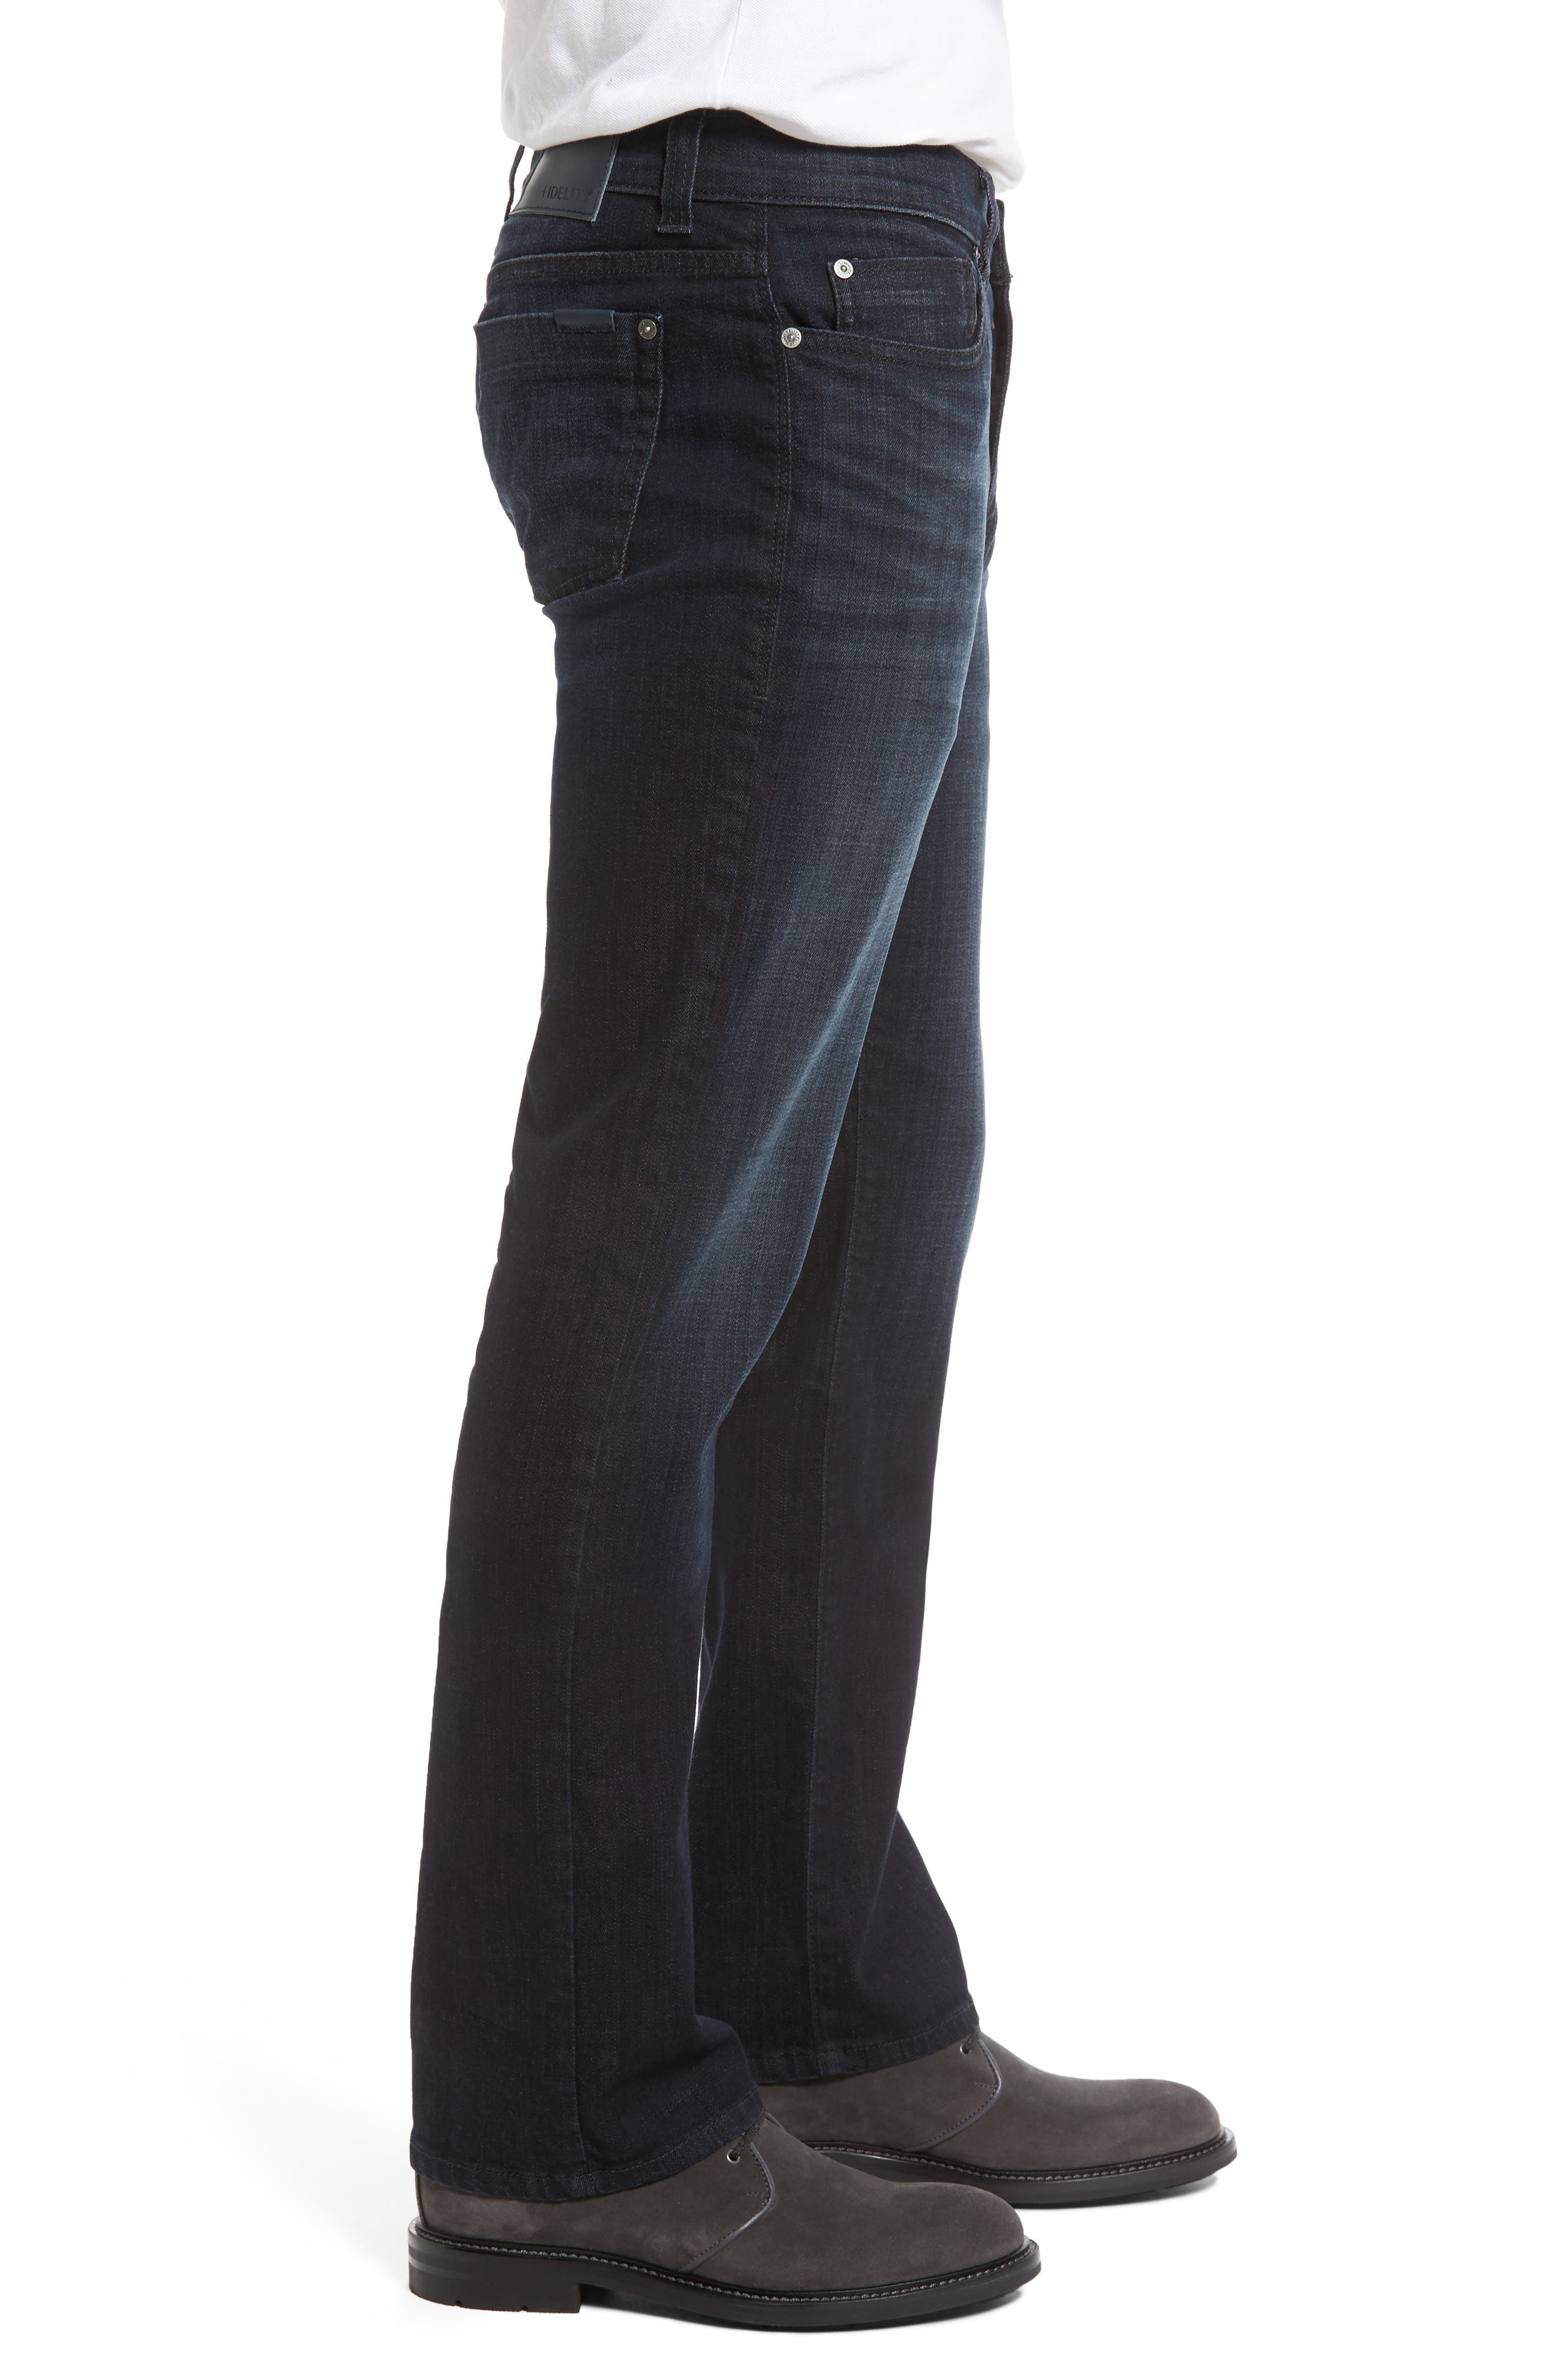 5011 Relaxed Fit Jeans,                             Alternate thumbnail 3, color,                             Harvard